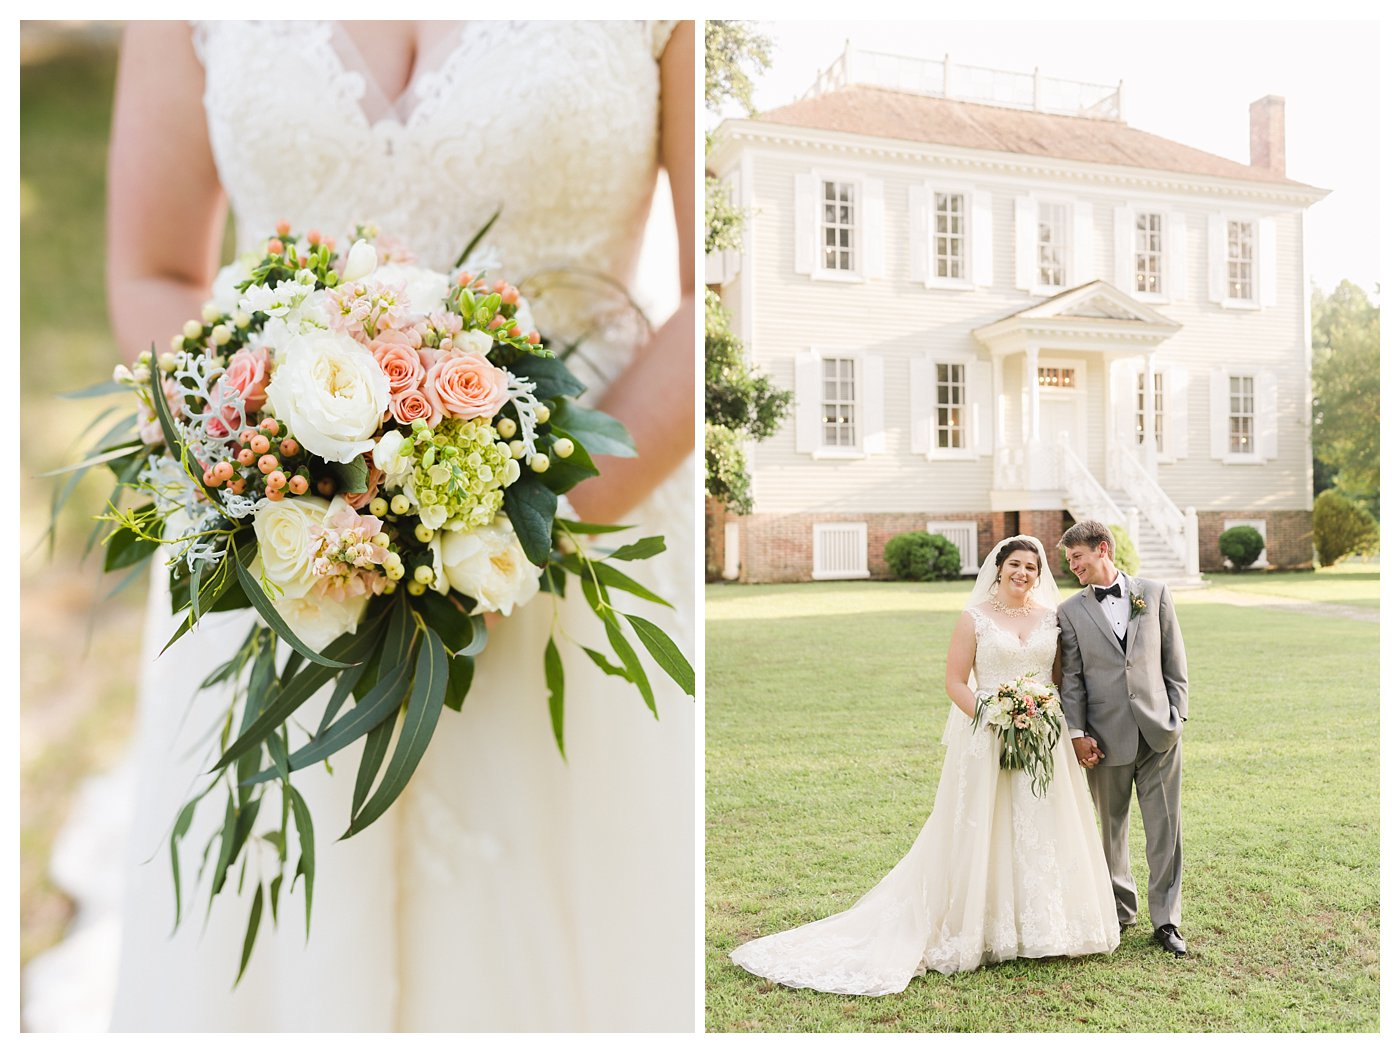 Historic Hope Plantation Wedding Photography by Amanda and Grady